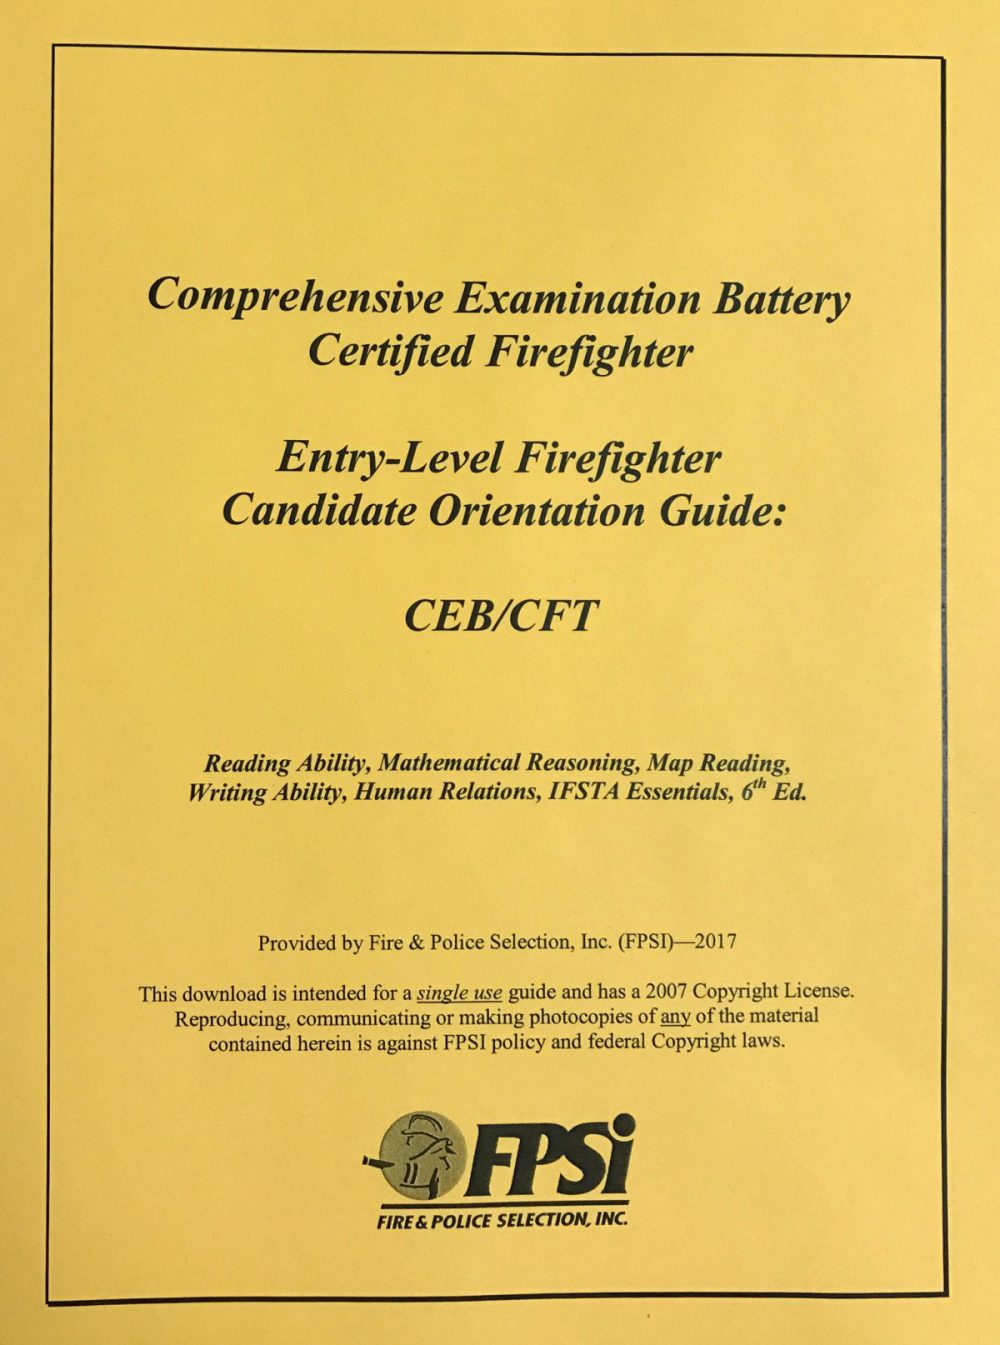 CEB/CFT Candidate Orientation Guide – entry-level firefighter practice test  that will determine how prepared you are to pass the actual Comprehensive  ...